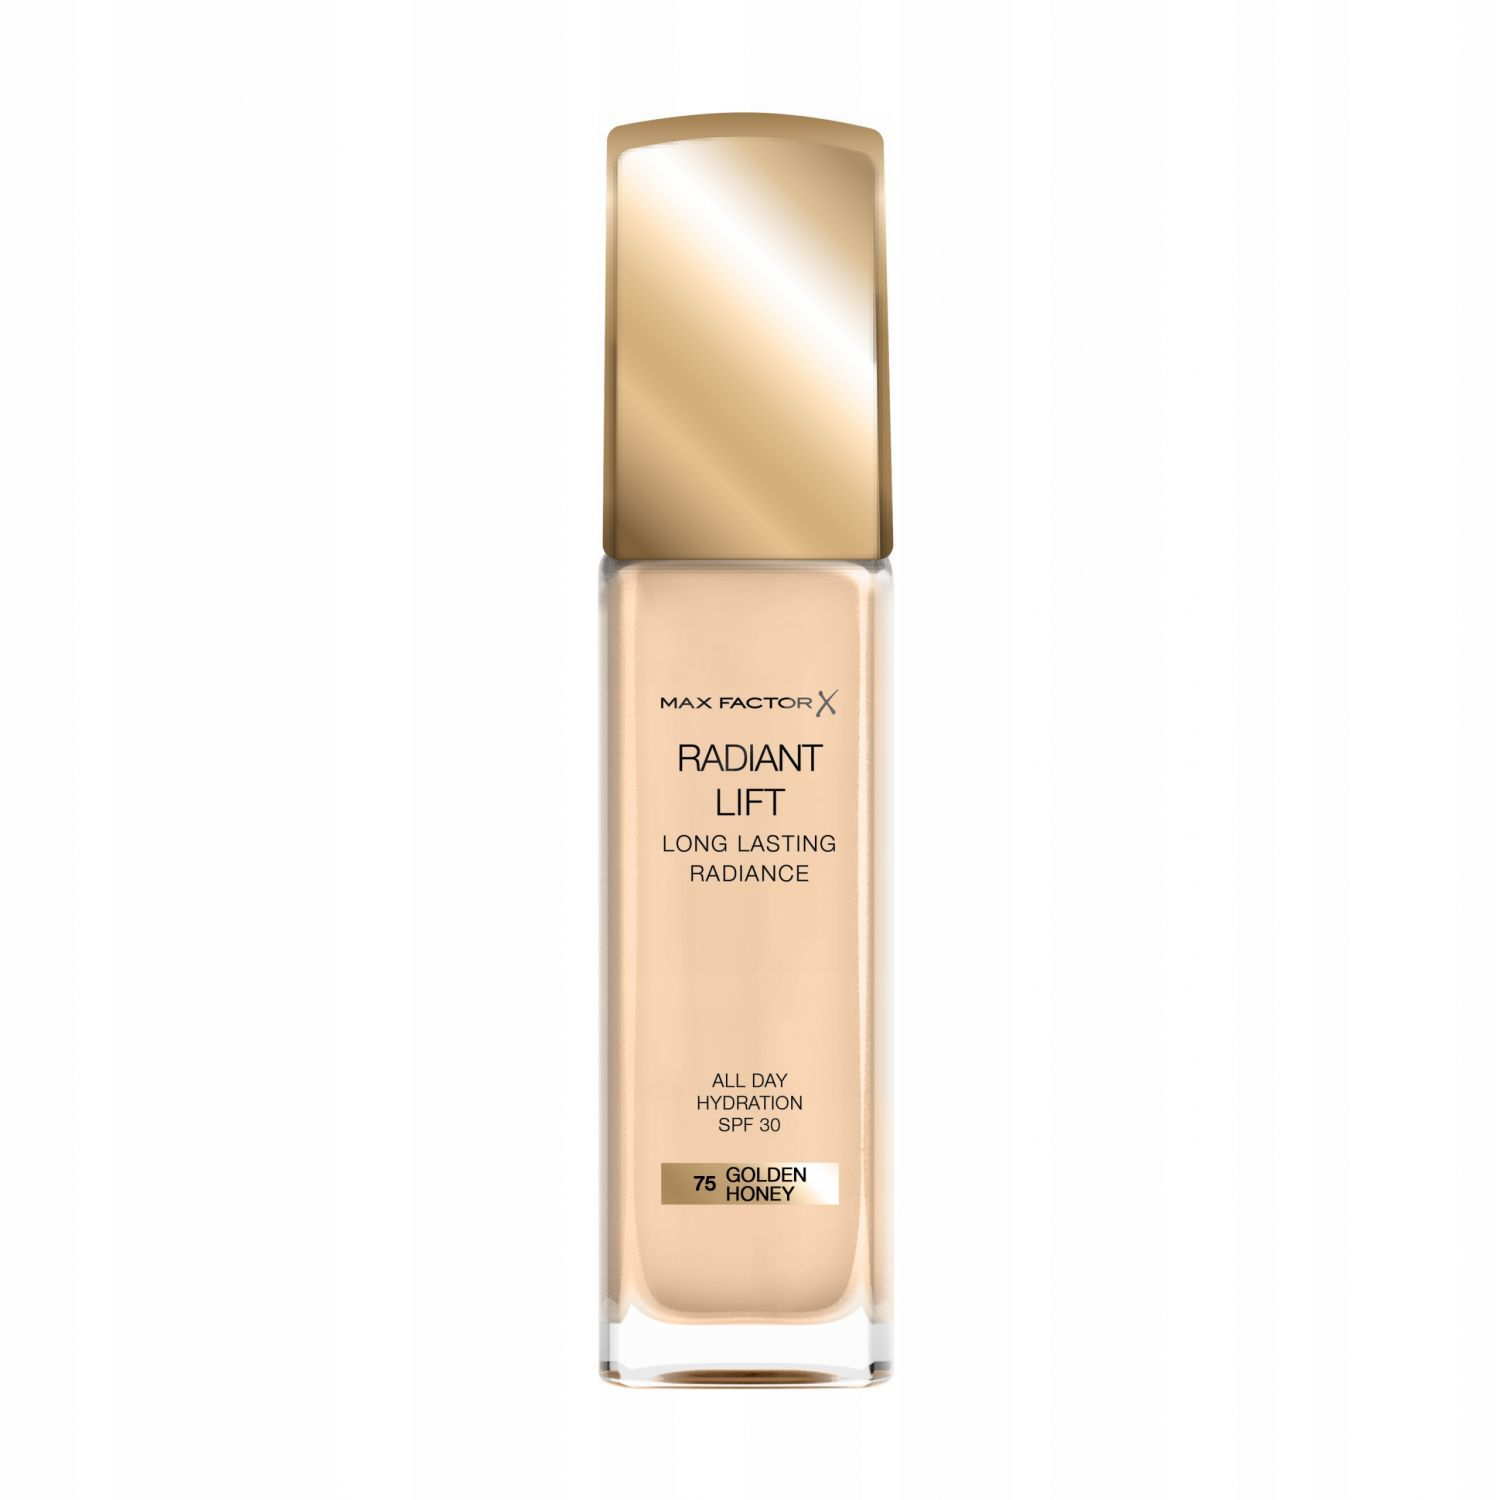 Max Factor Radiant Lift Long Lasting Radiance SPF30 75 Golden Honey